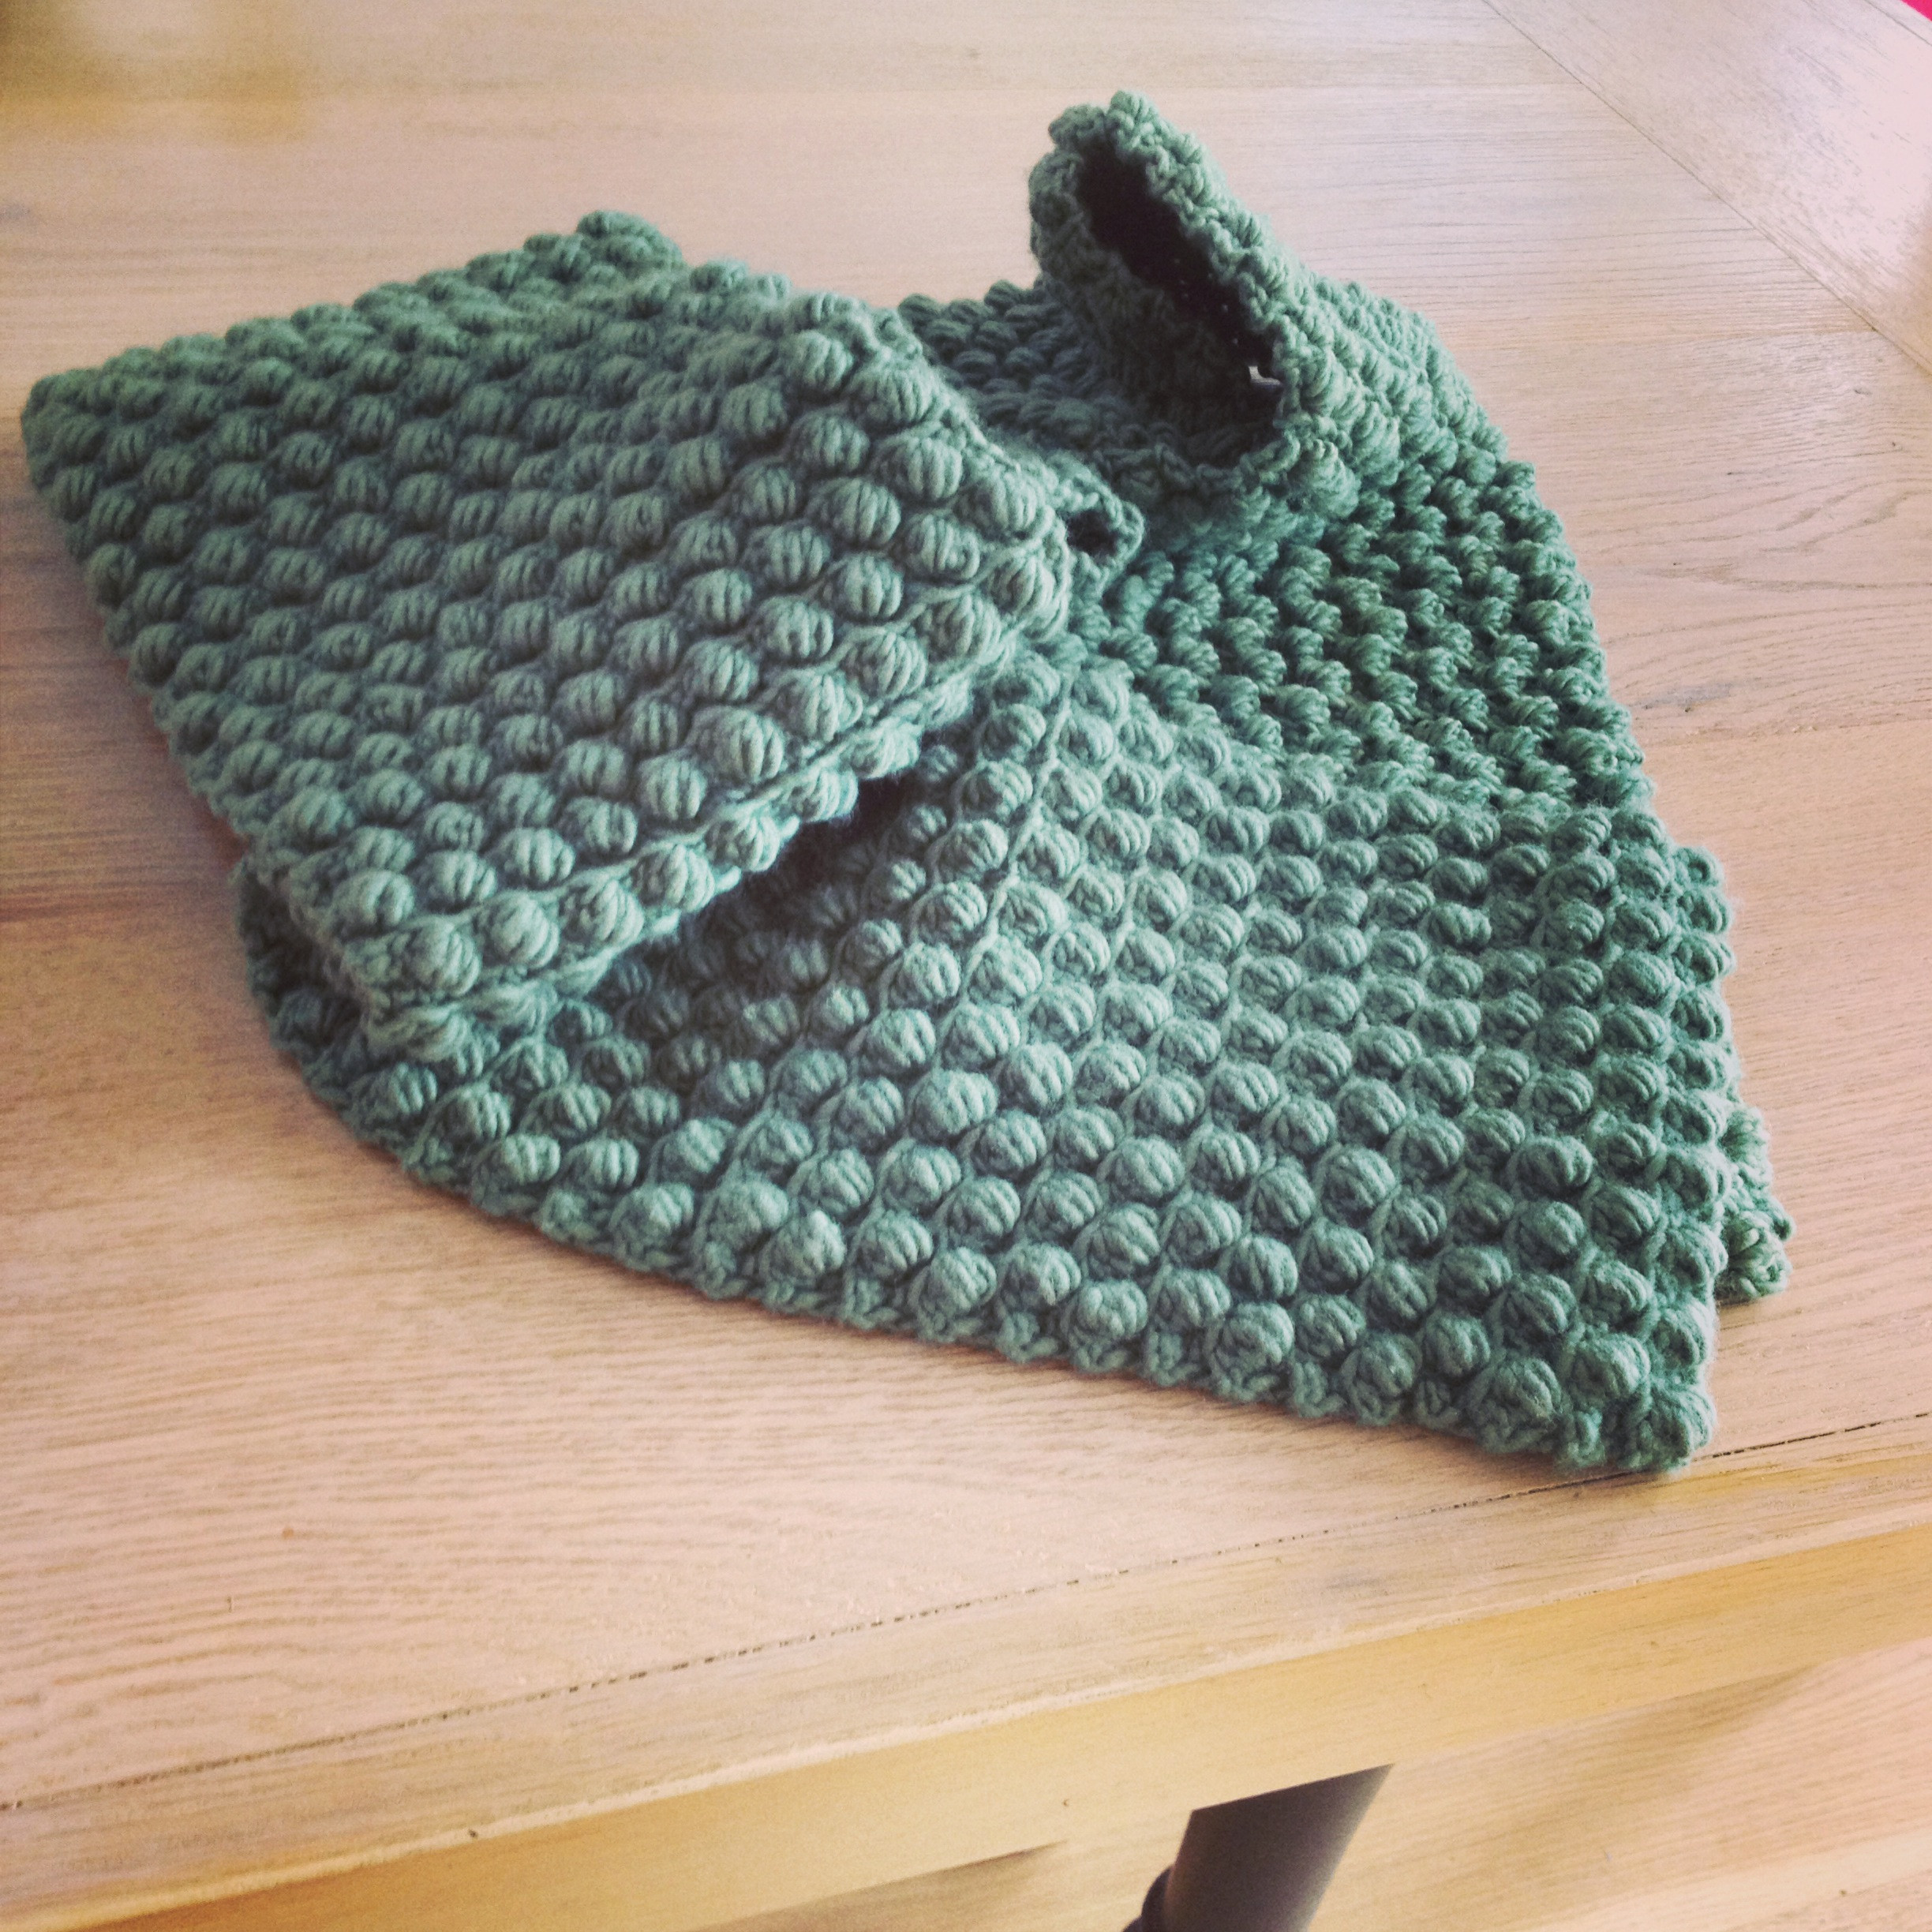 Awesome Popcorn Stitch Crochet Tutorial and Patterns Crochet Stitches for Scarves Of Gorgeous 48 Ideas Crochet Stitches for Scarves